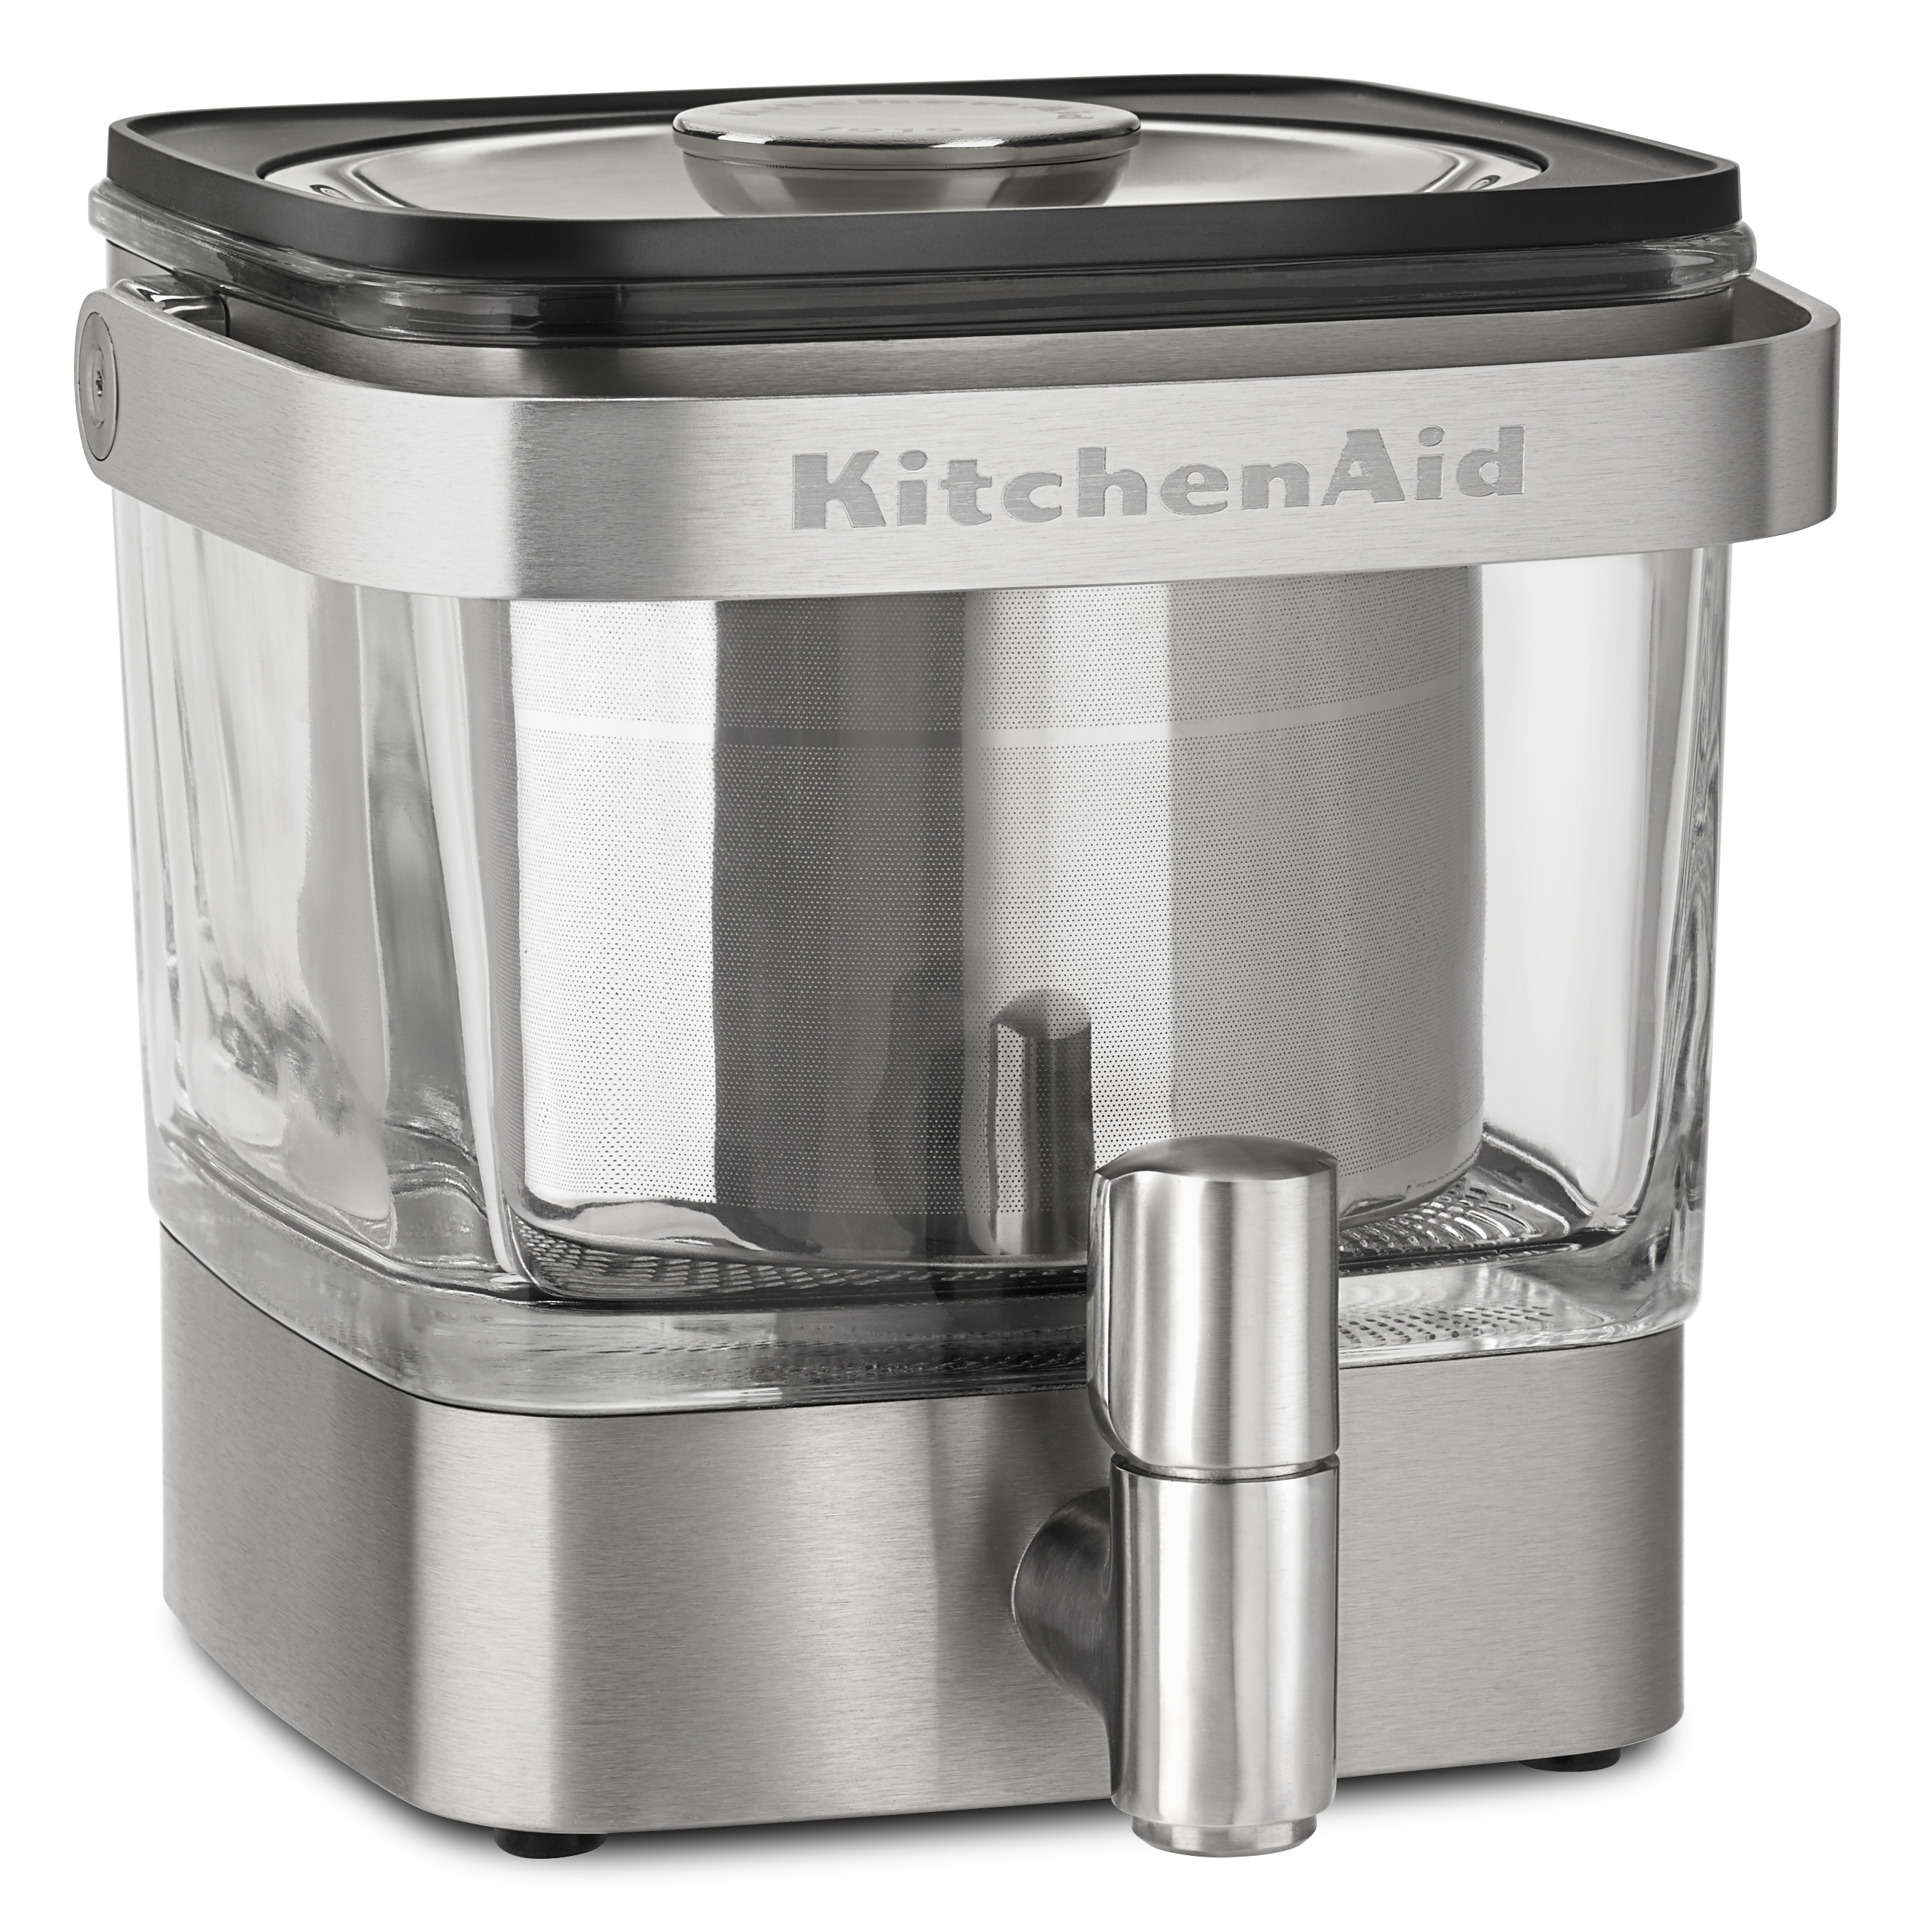 Silver KitchenAid Cold Brew Coffee machine